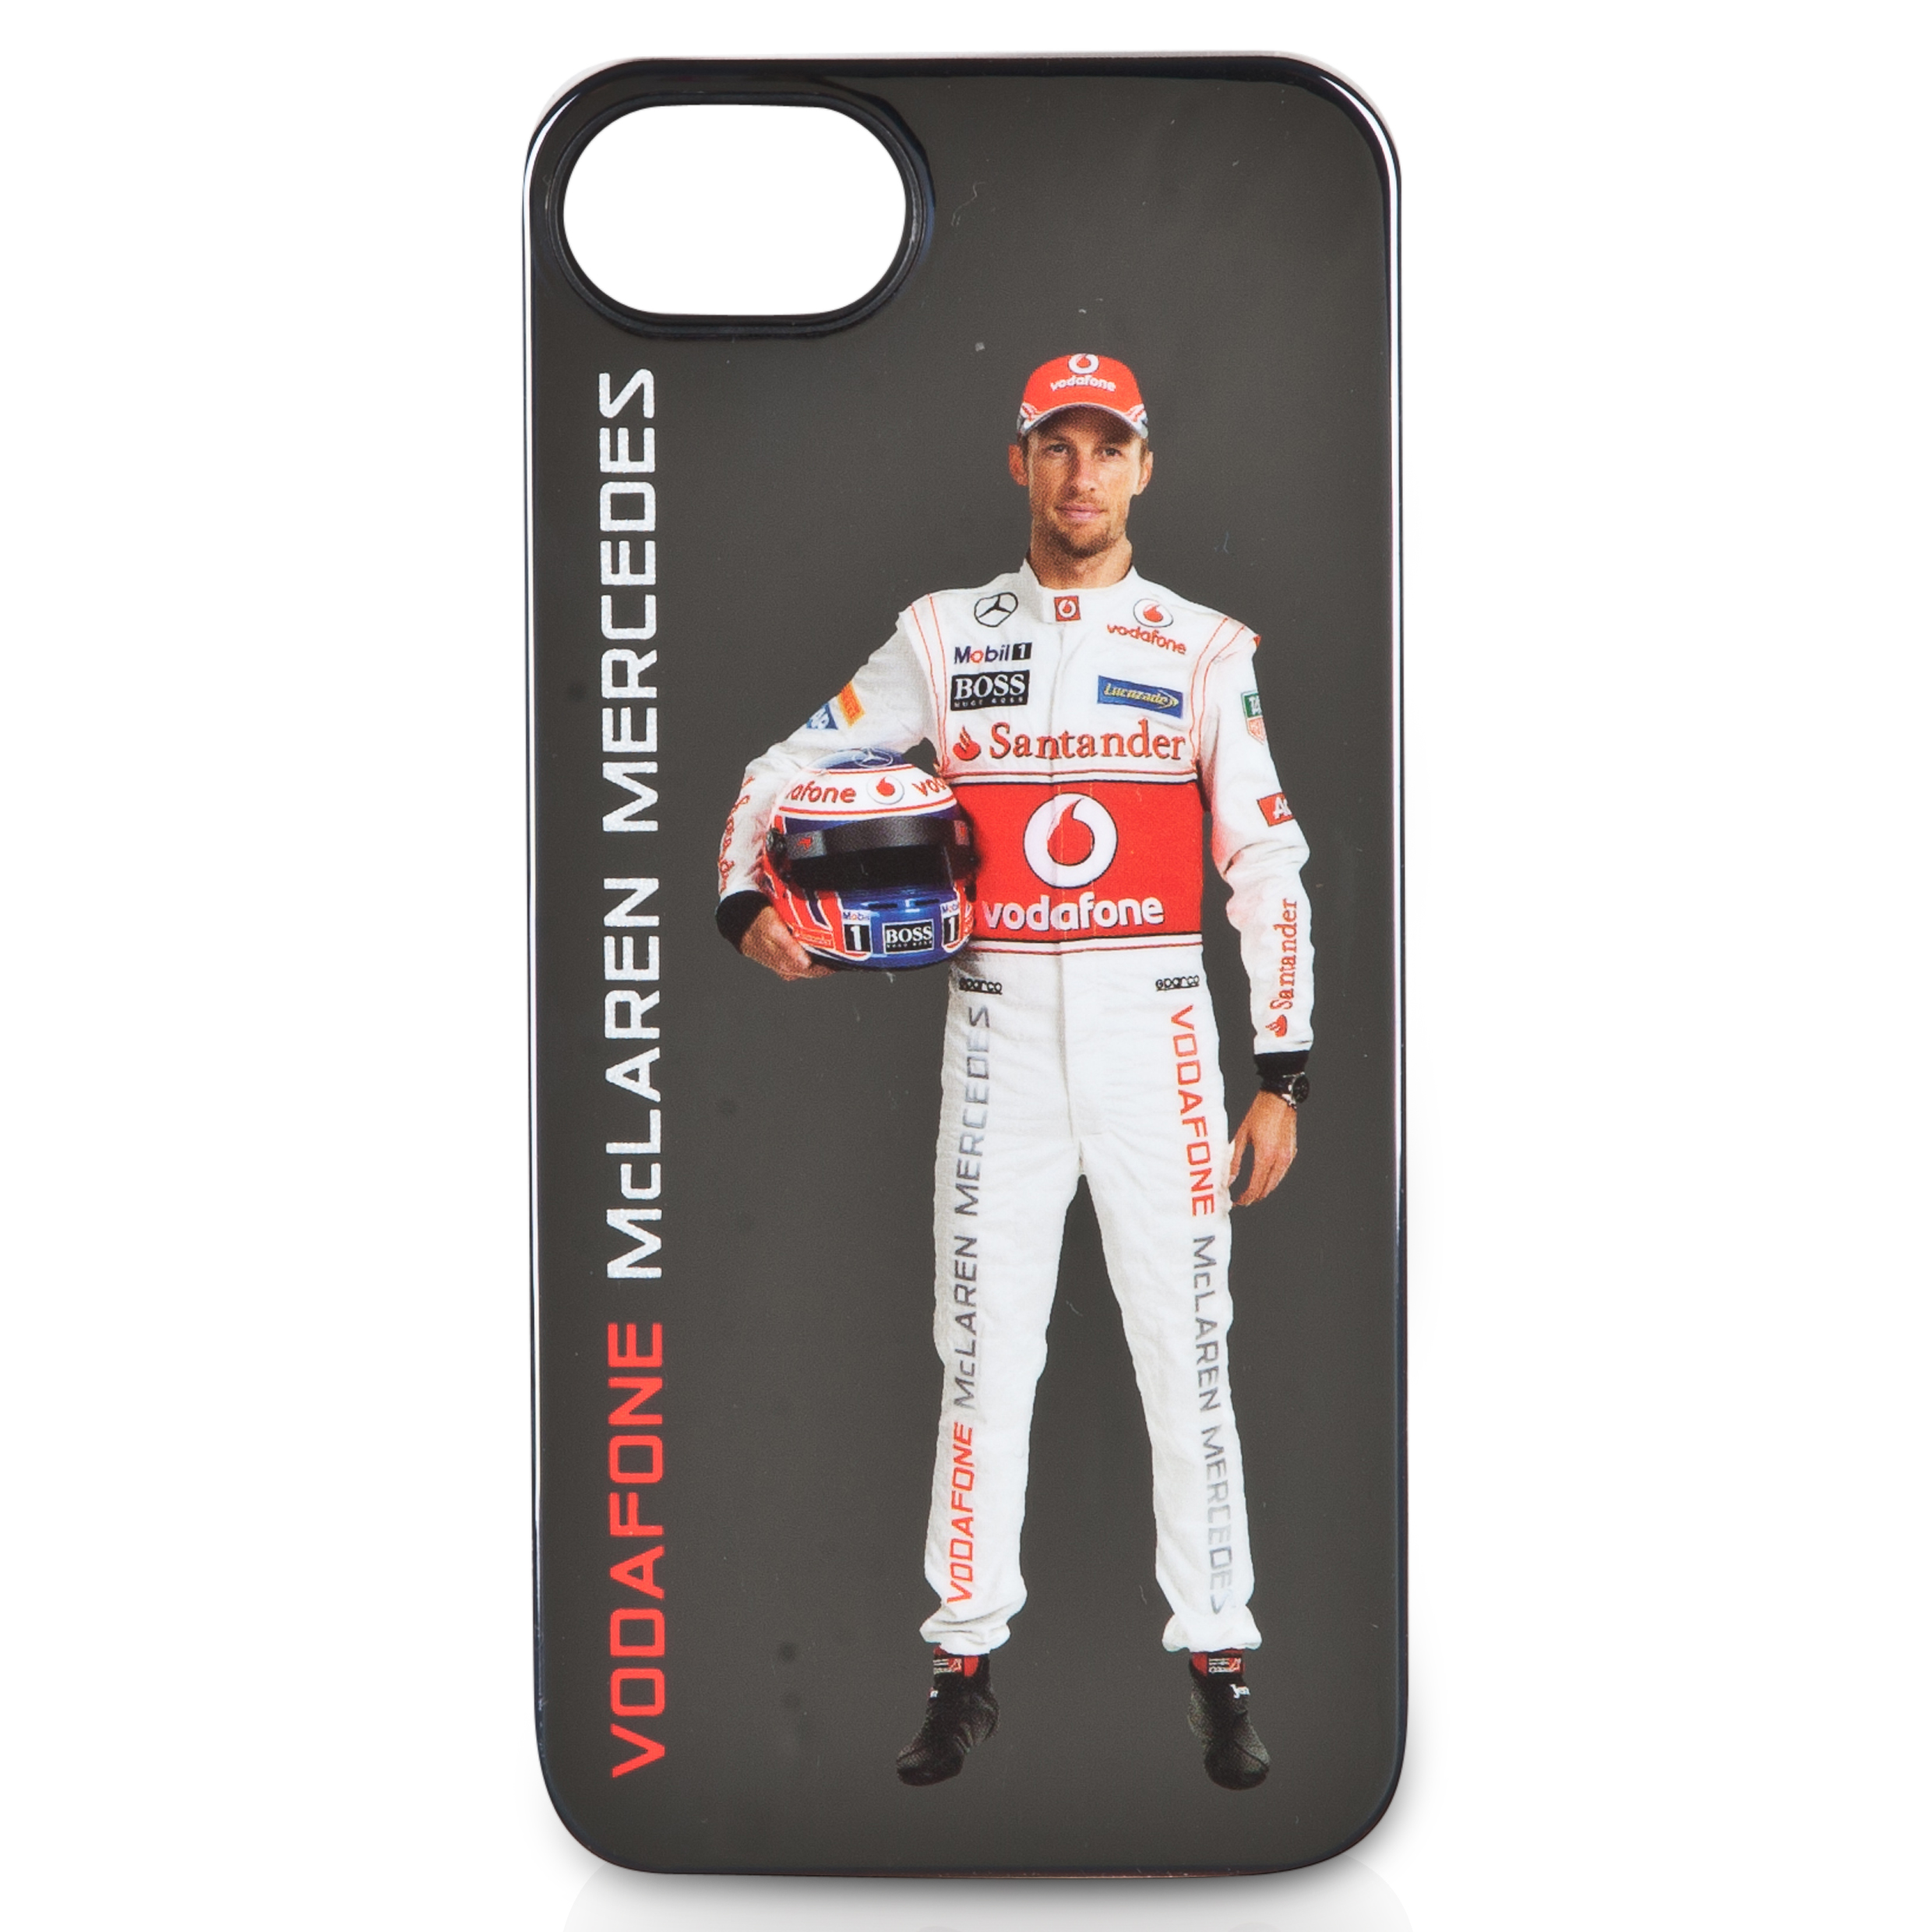 Vodafone McLaren Mercedes Premium Slim Case for iPhone 5 - Jenson Button Lt Grey